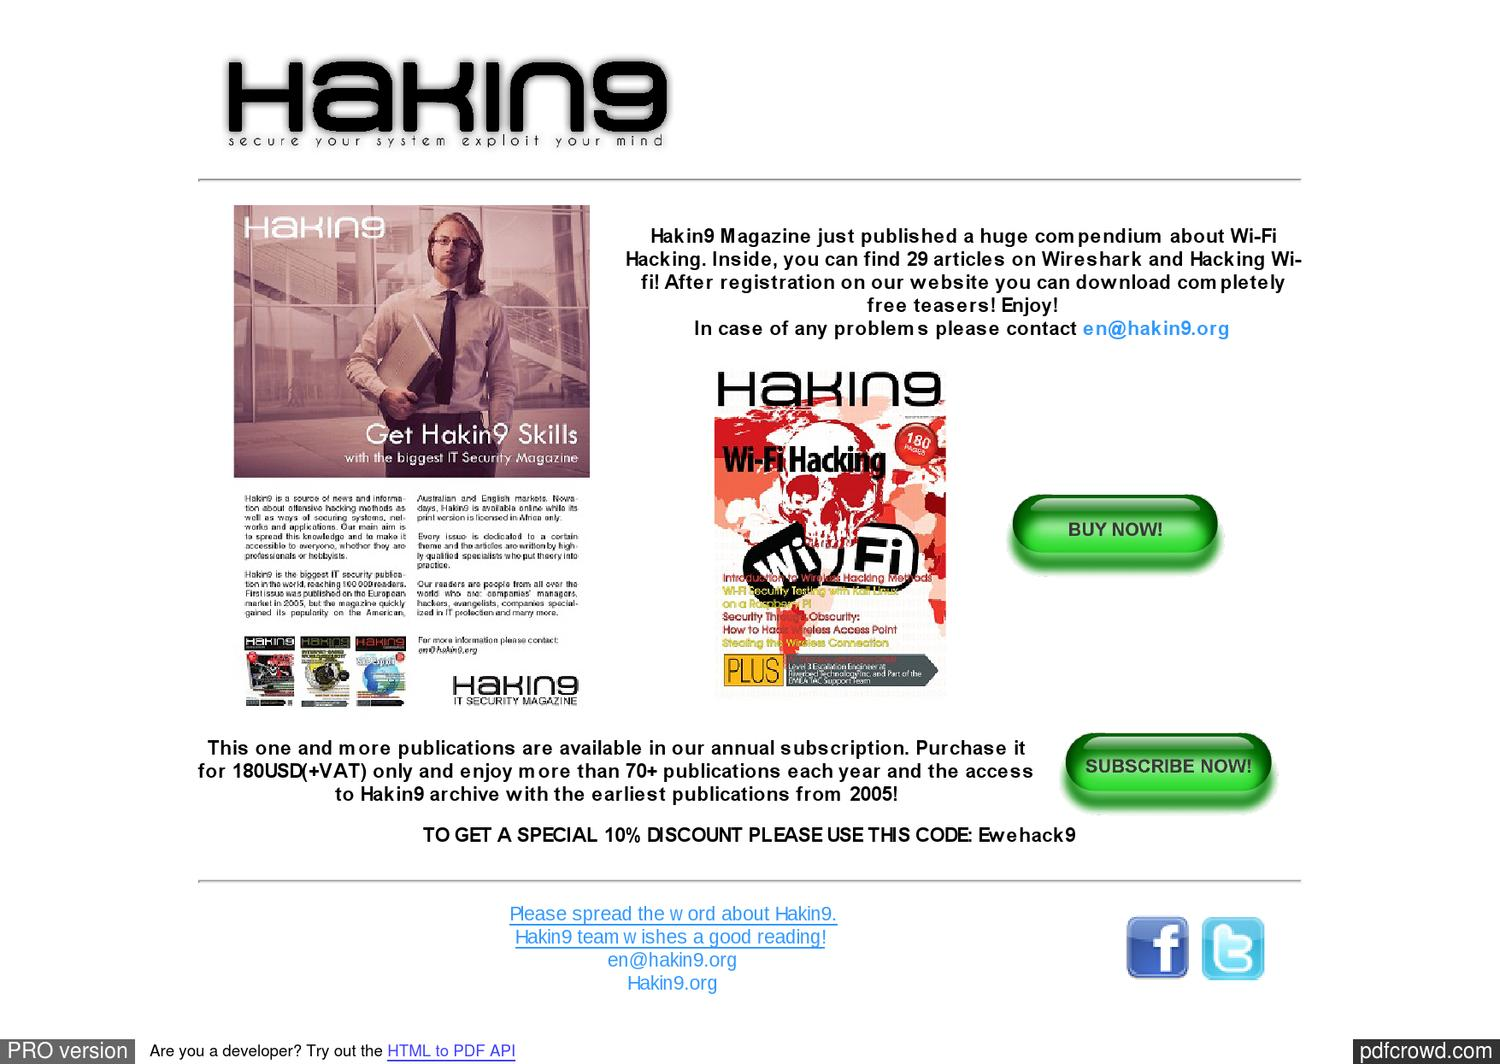 Free Download Hakin9 Magazine 2005 To 2013 Full Collection